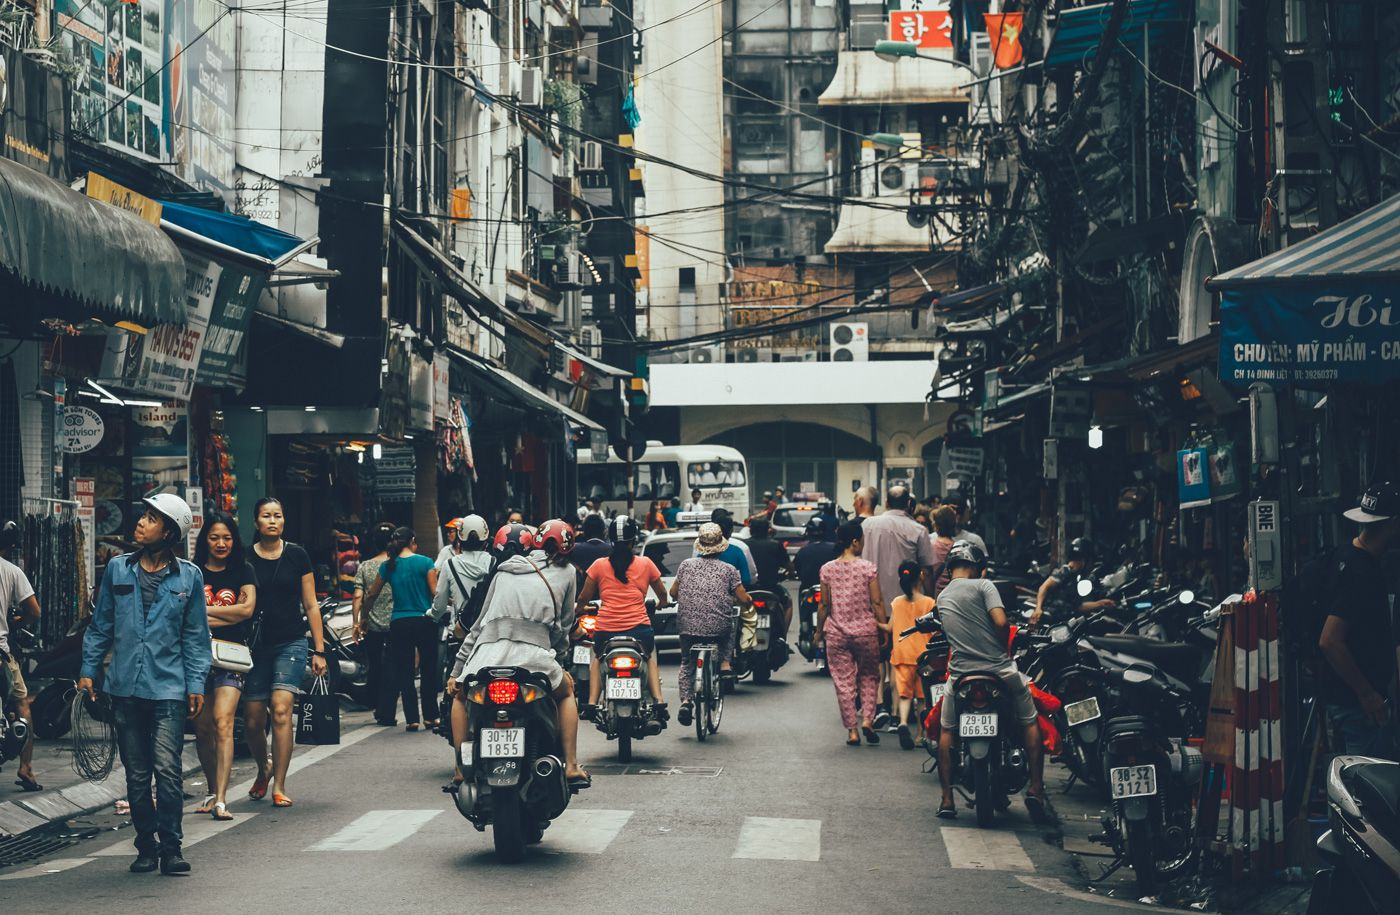 My Vietnam Trip Cost: How Cheap Is Vietnam and Cost To Travel